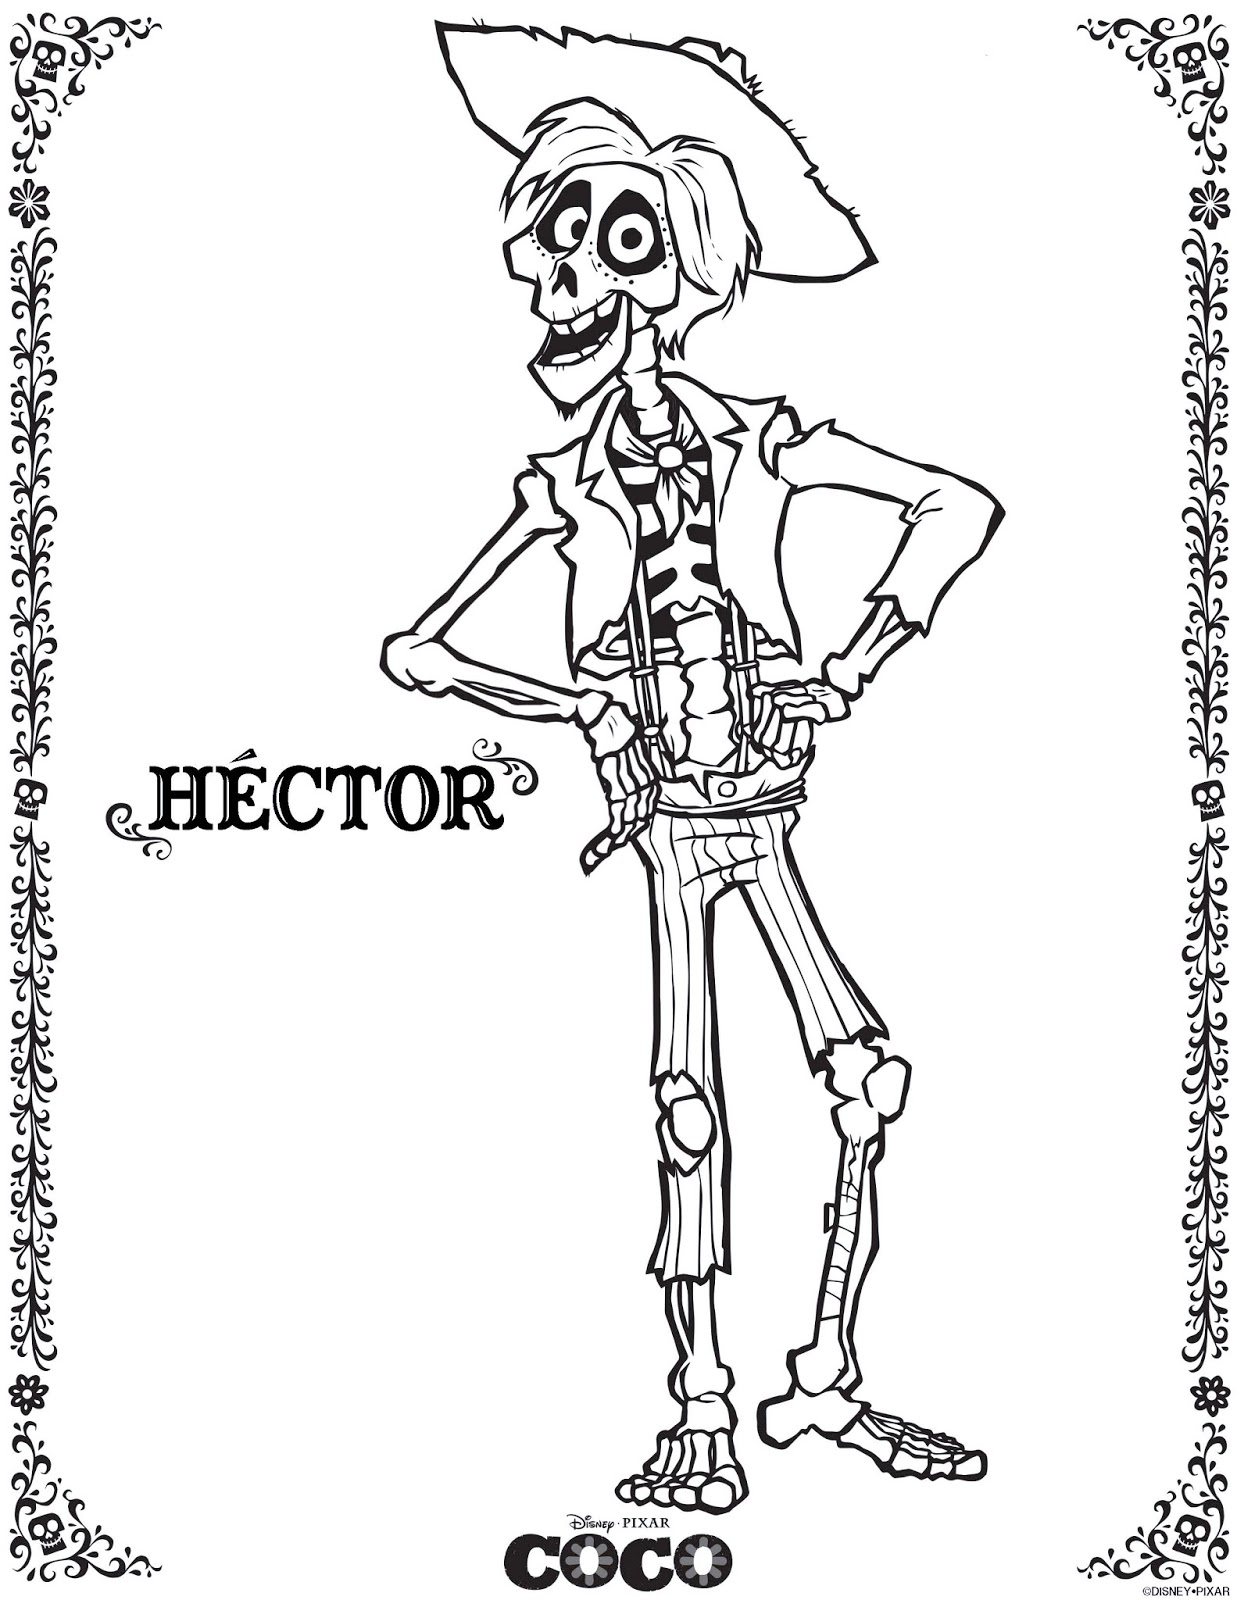 Hector Coco Coloring Pages From Disney Pixar Movie